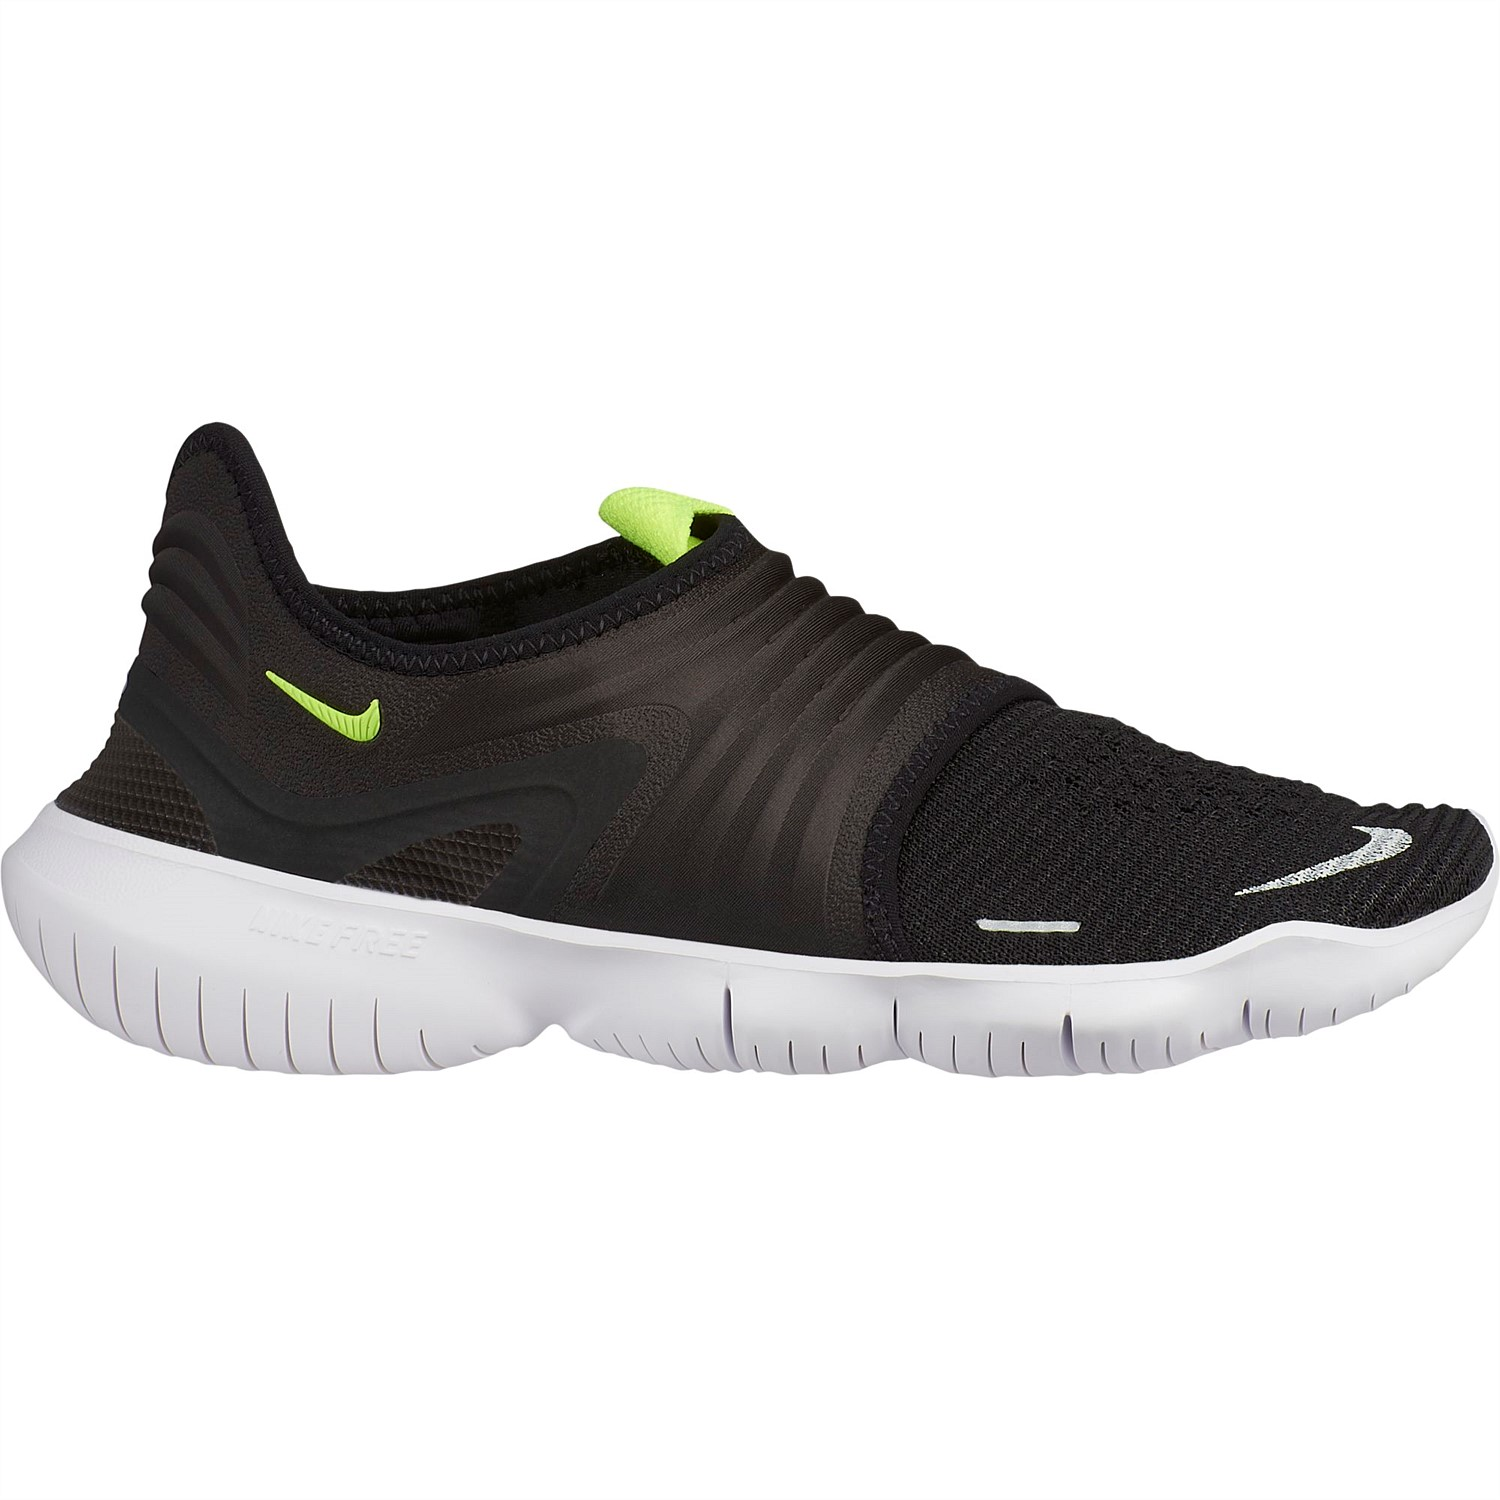 separation shoes 0e4b3 07ee0 Free Run Flyknit 3.0 Womens